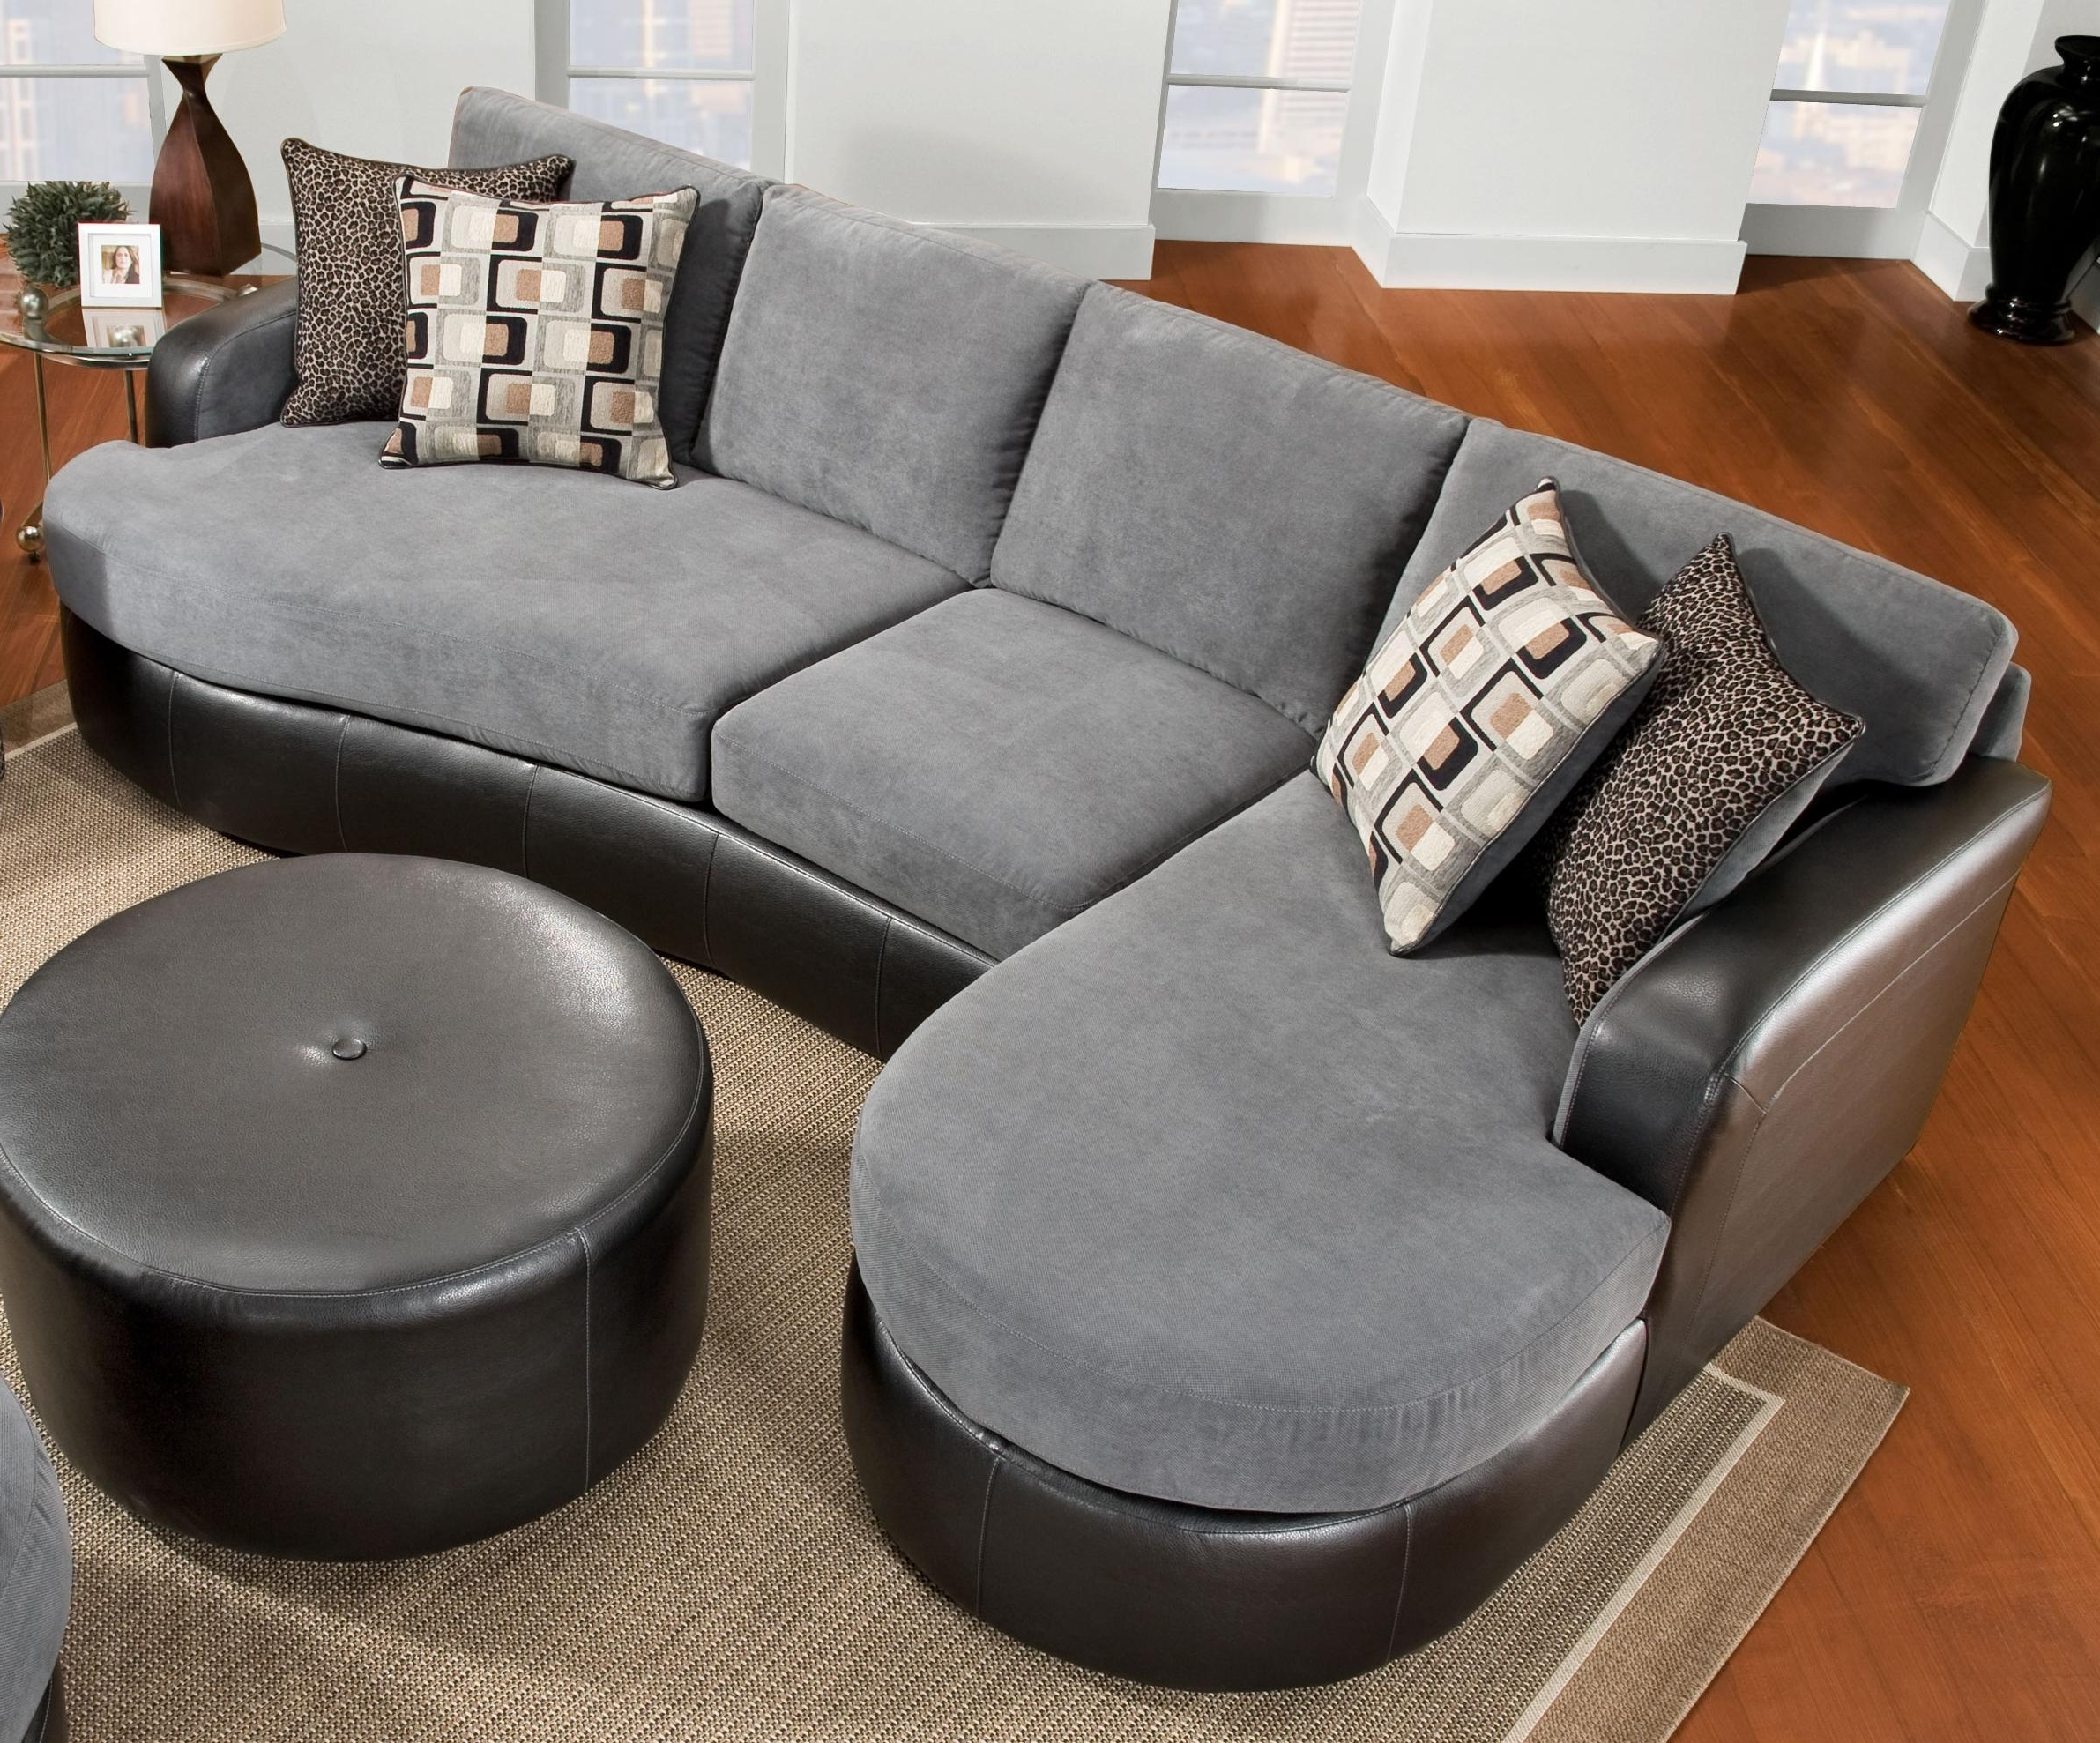 Elegant Chic Gray Velvet And Black Leather Sectional Sofa With F With Fashionable Sofas With Chaise And Ottoman (View 15 of 20)